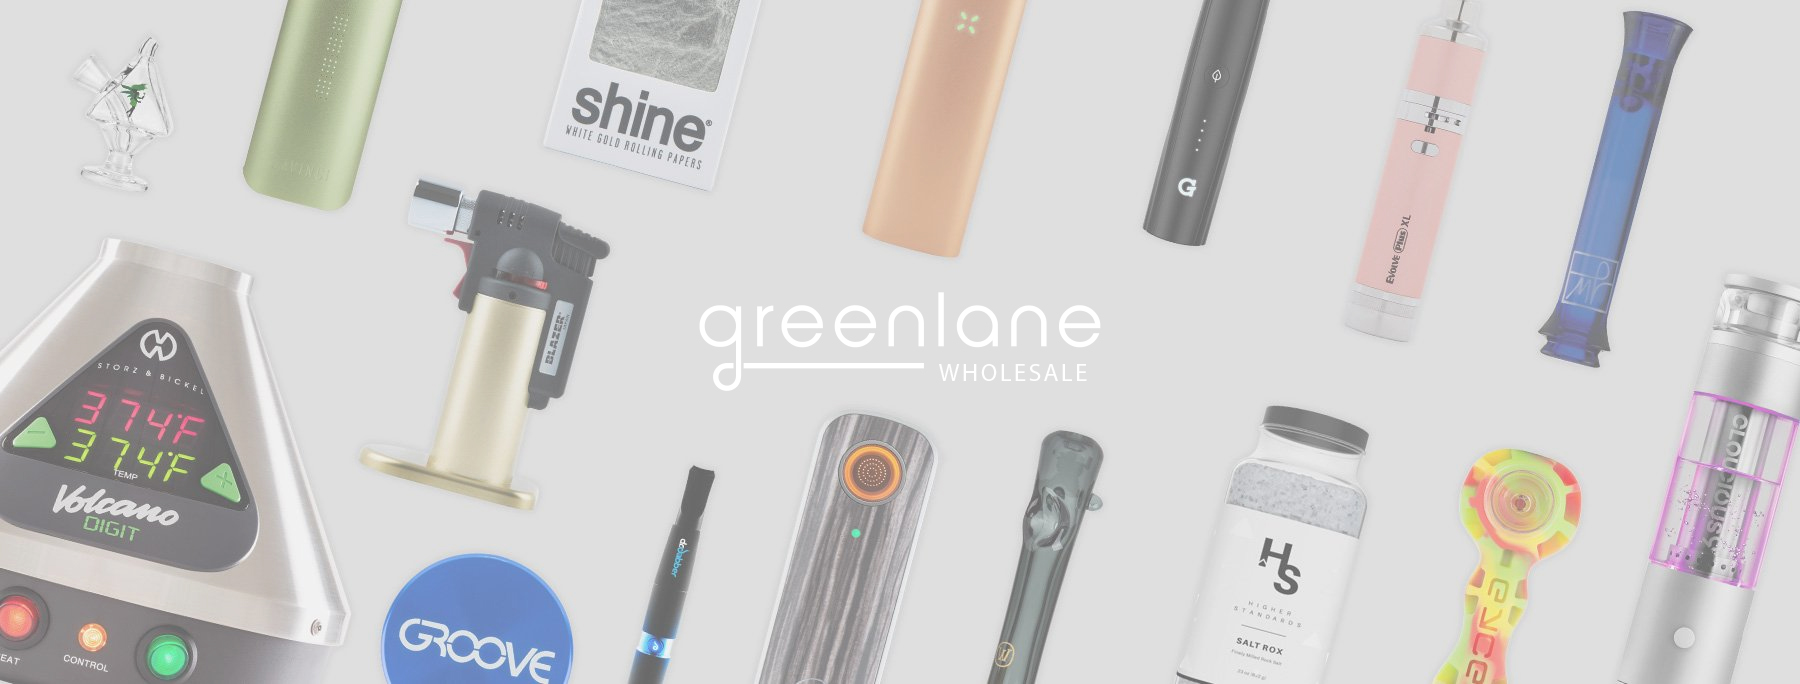 Greenlane: Leading Distributor to Dispensaries & Smoke Shops